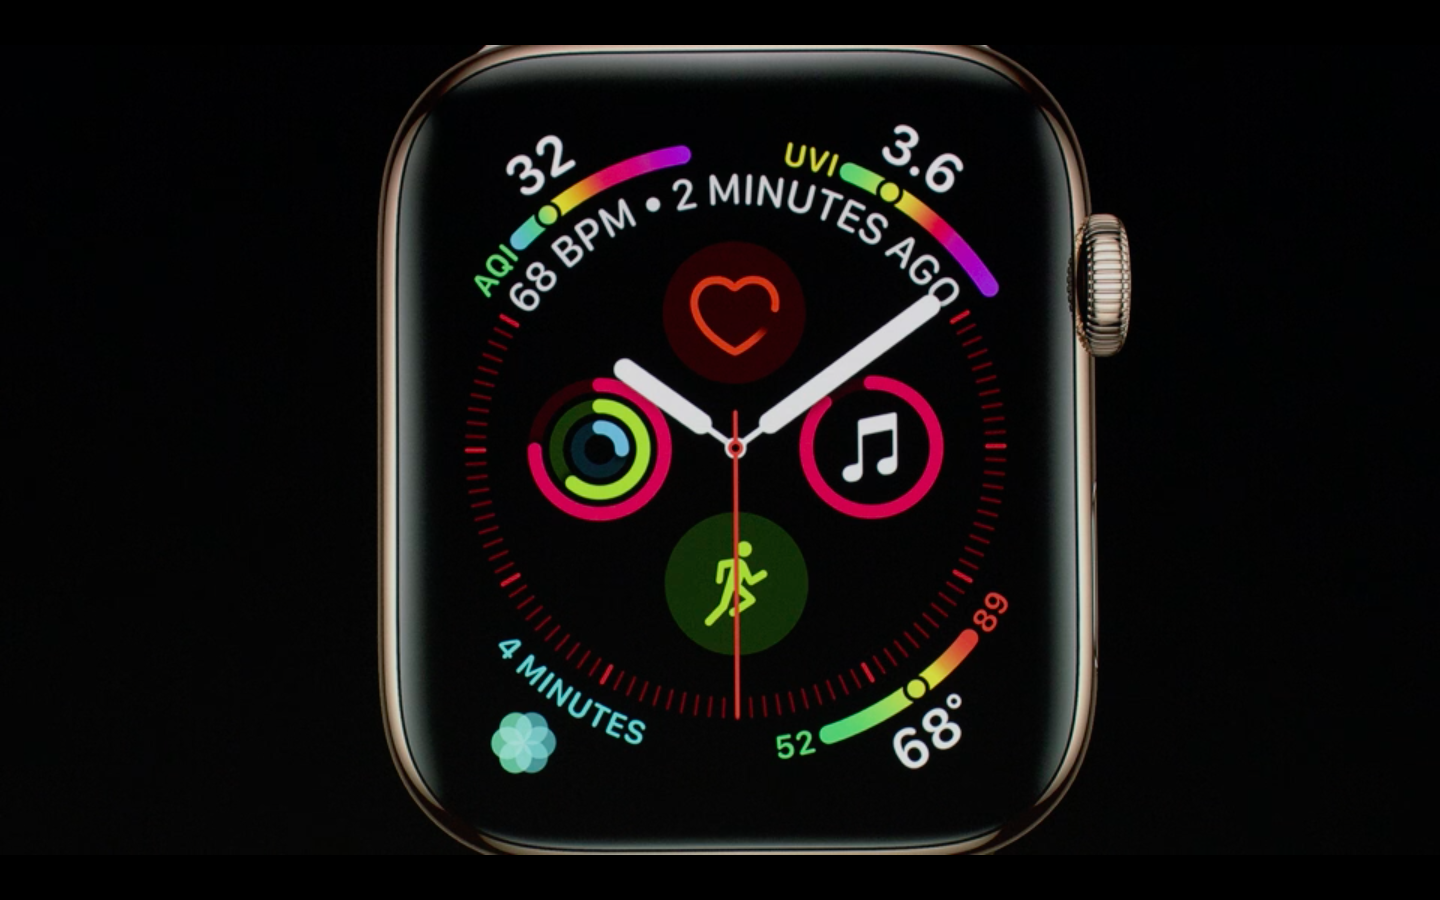 Apple Watch Series 4 has 20% lower battery capacity than Series 3 | Trusted Reviews